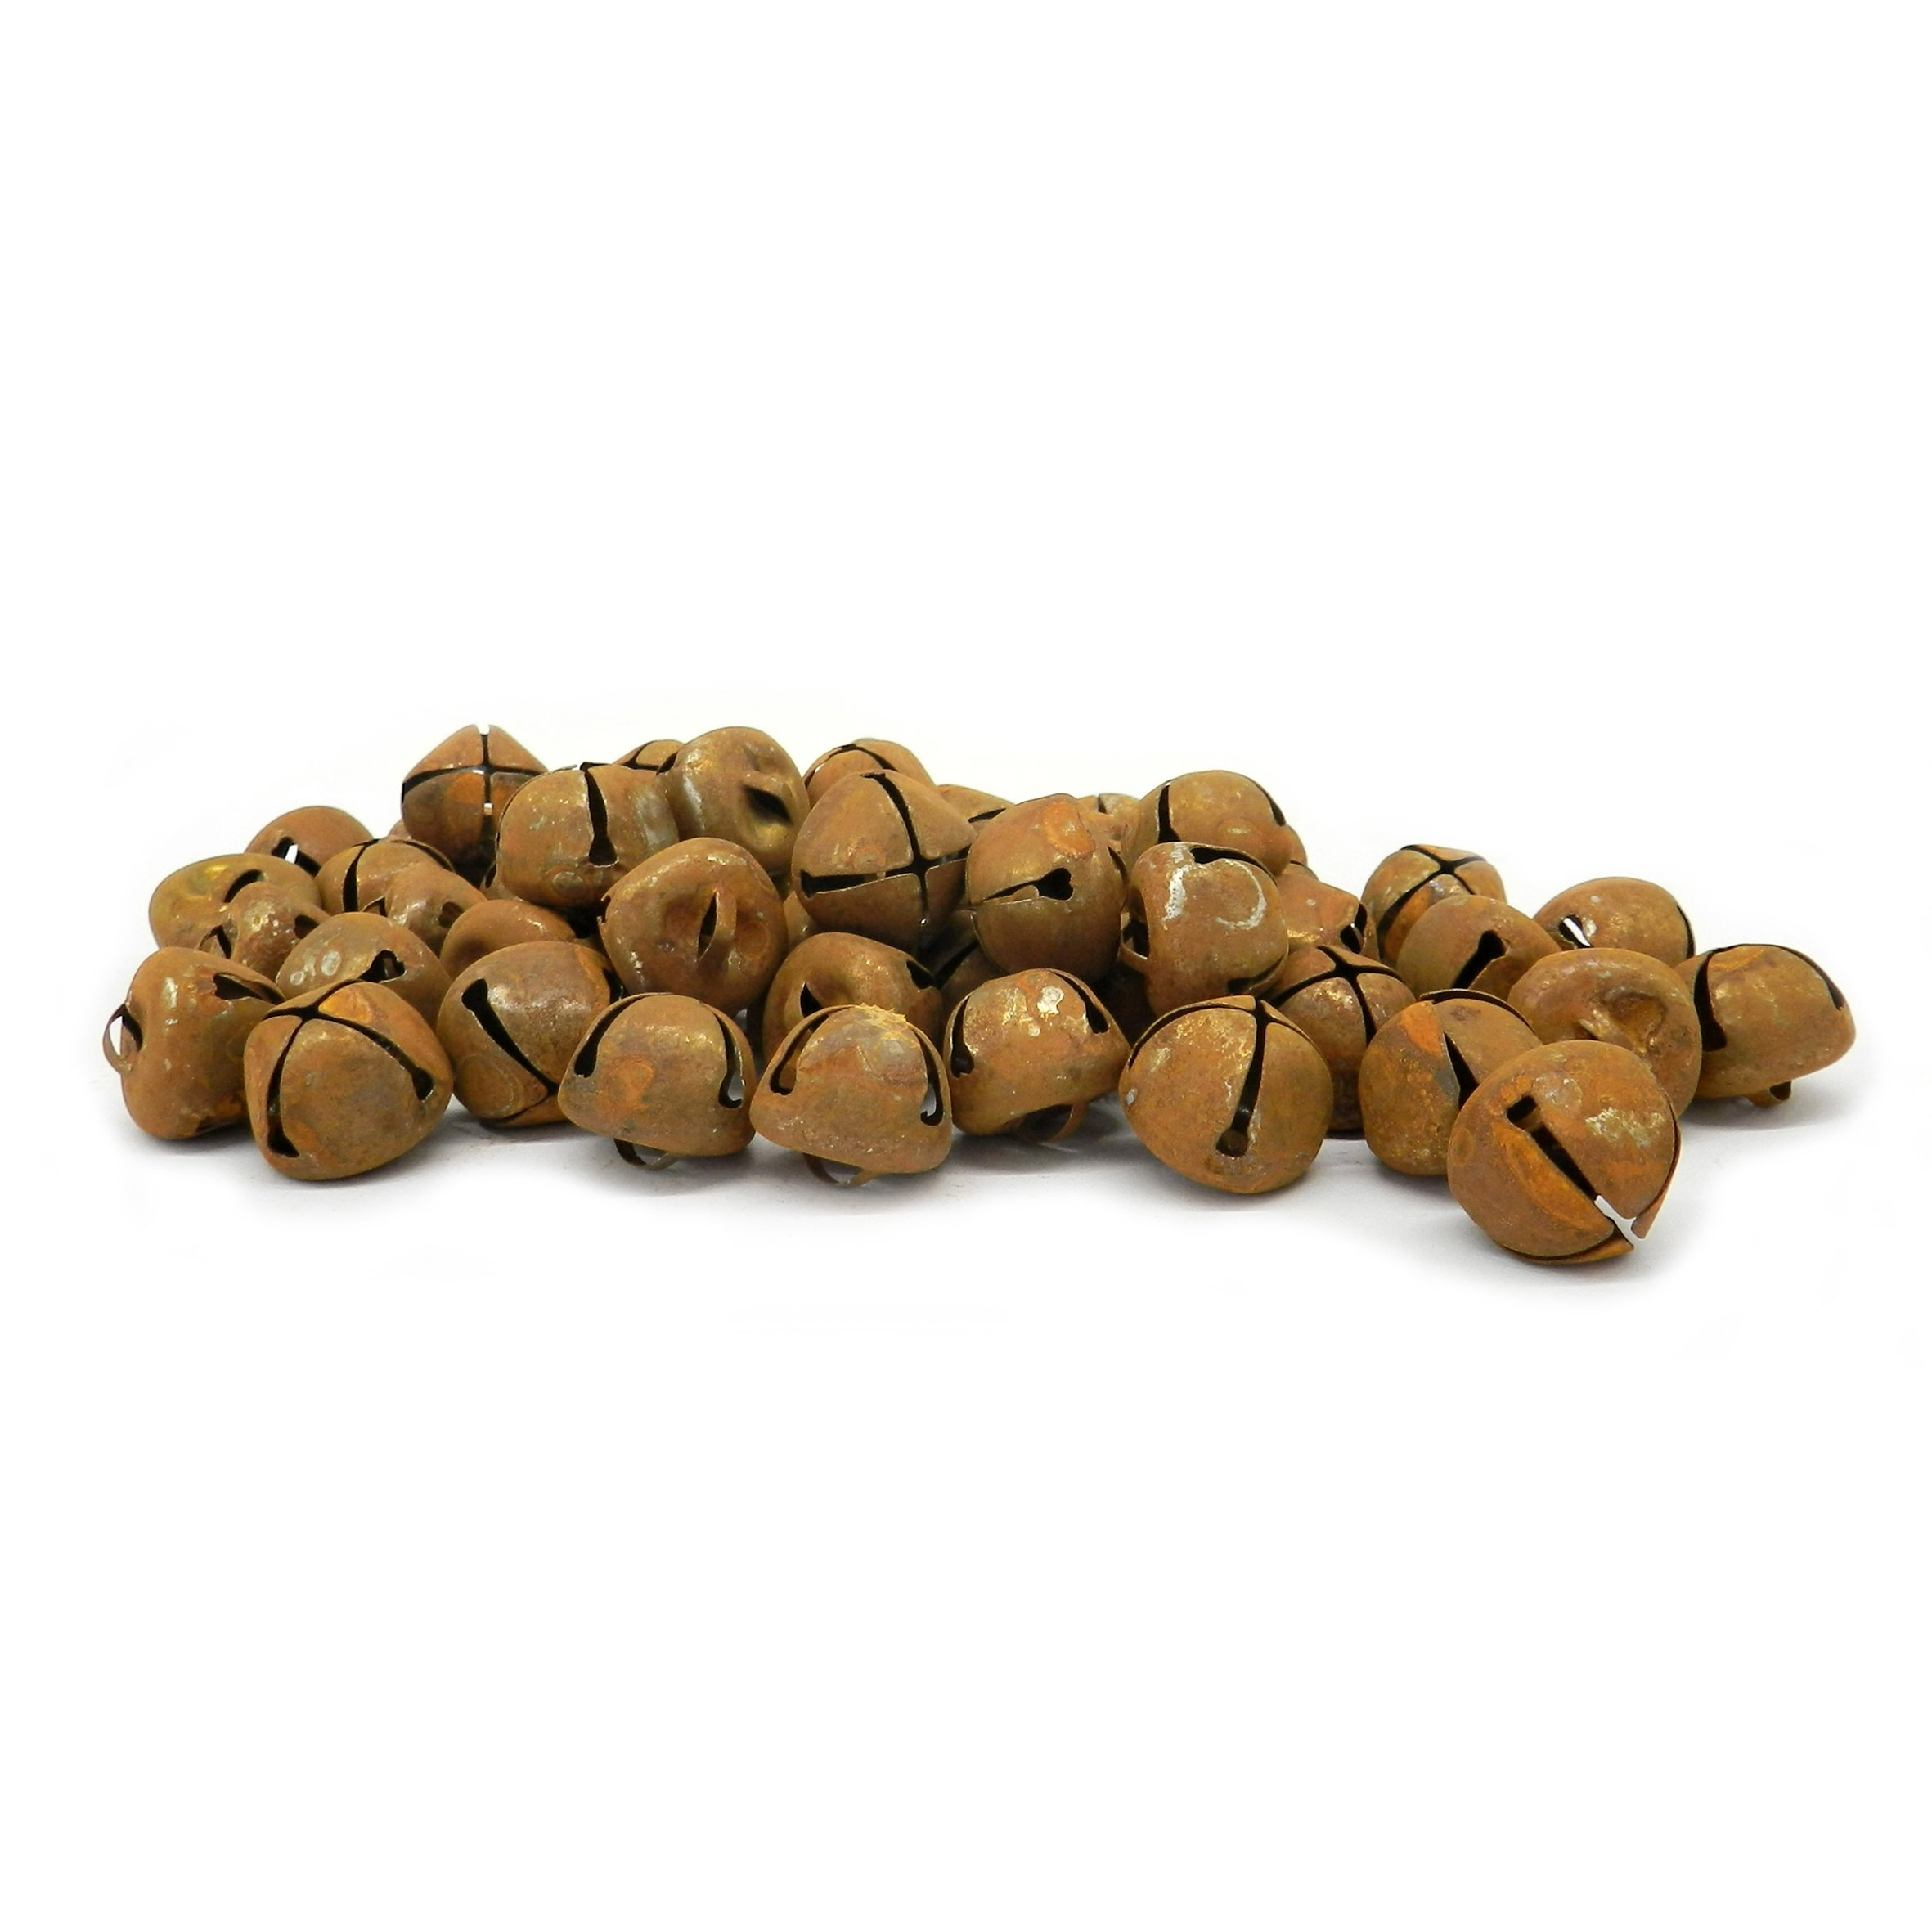 CVHOMEDECO. Vintage Primitive Craft Rusty Tin Jingle Bells for Crafting, Designing and Decorating, 3/4'', Packages of 50.